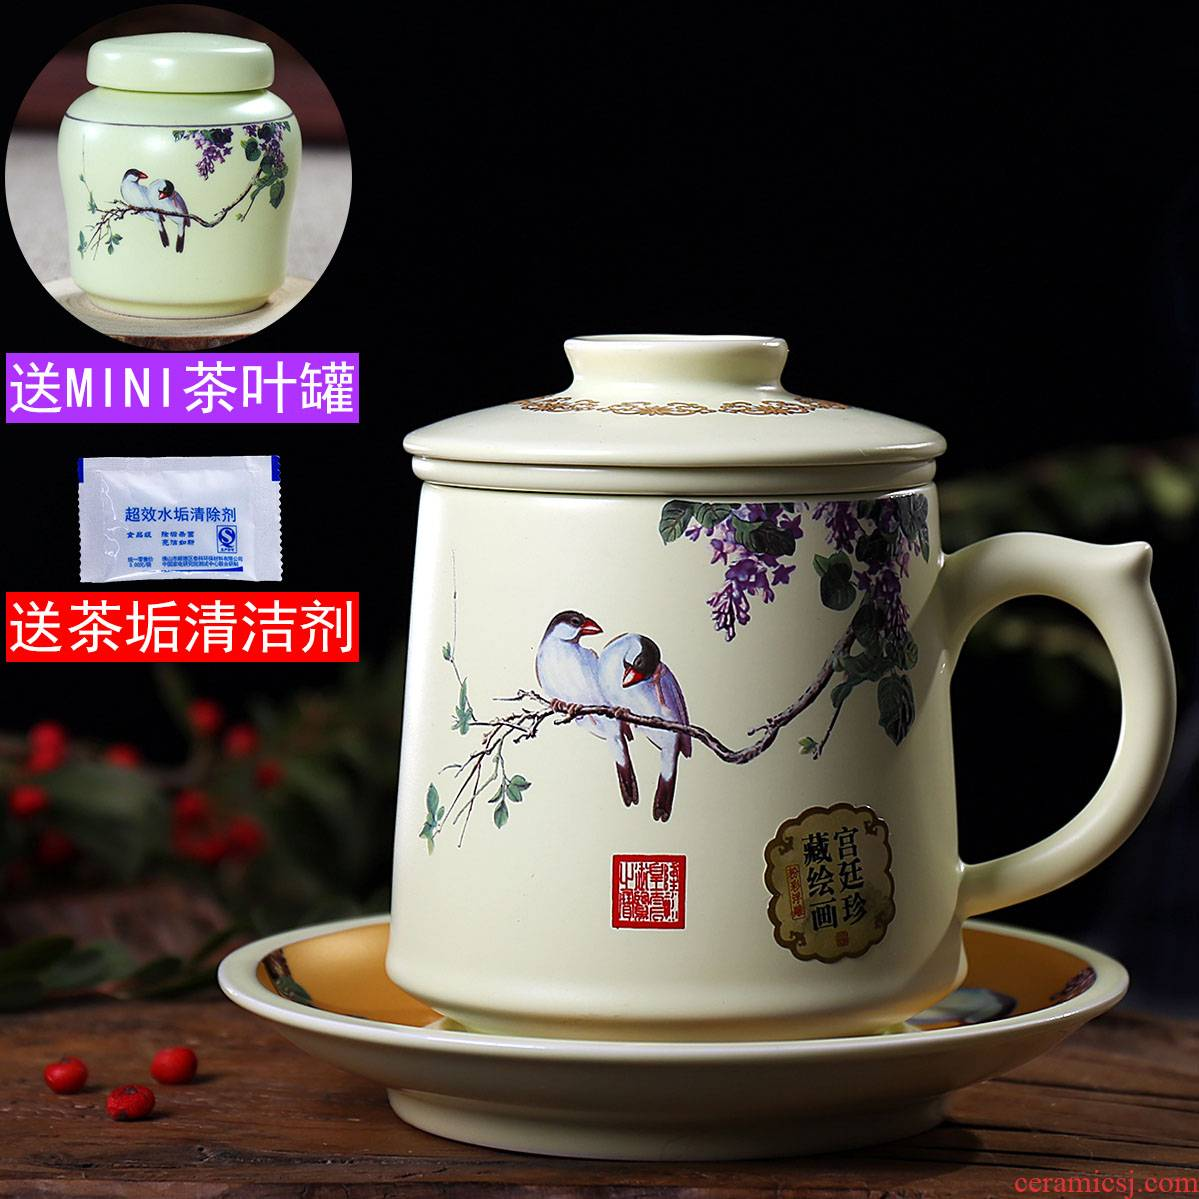 Jingdezhen ceramic cups with cover to filter the tea cup home boss office water in a glass tea set